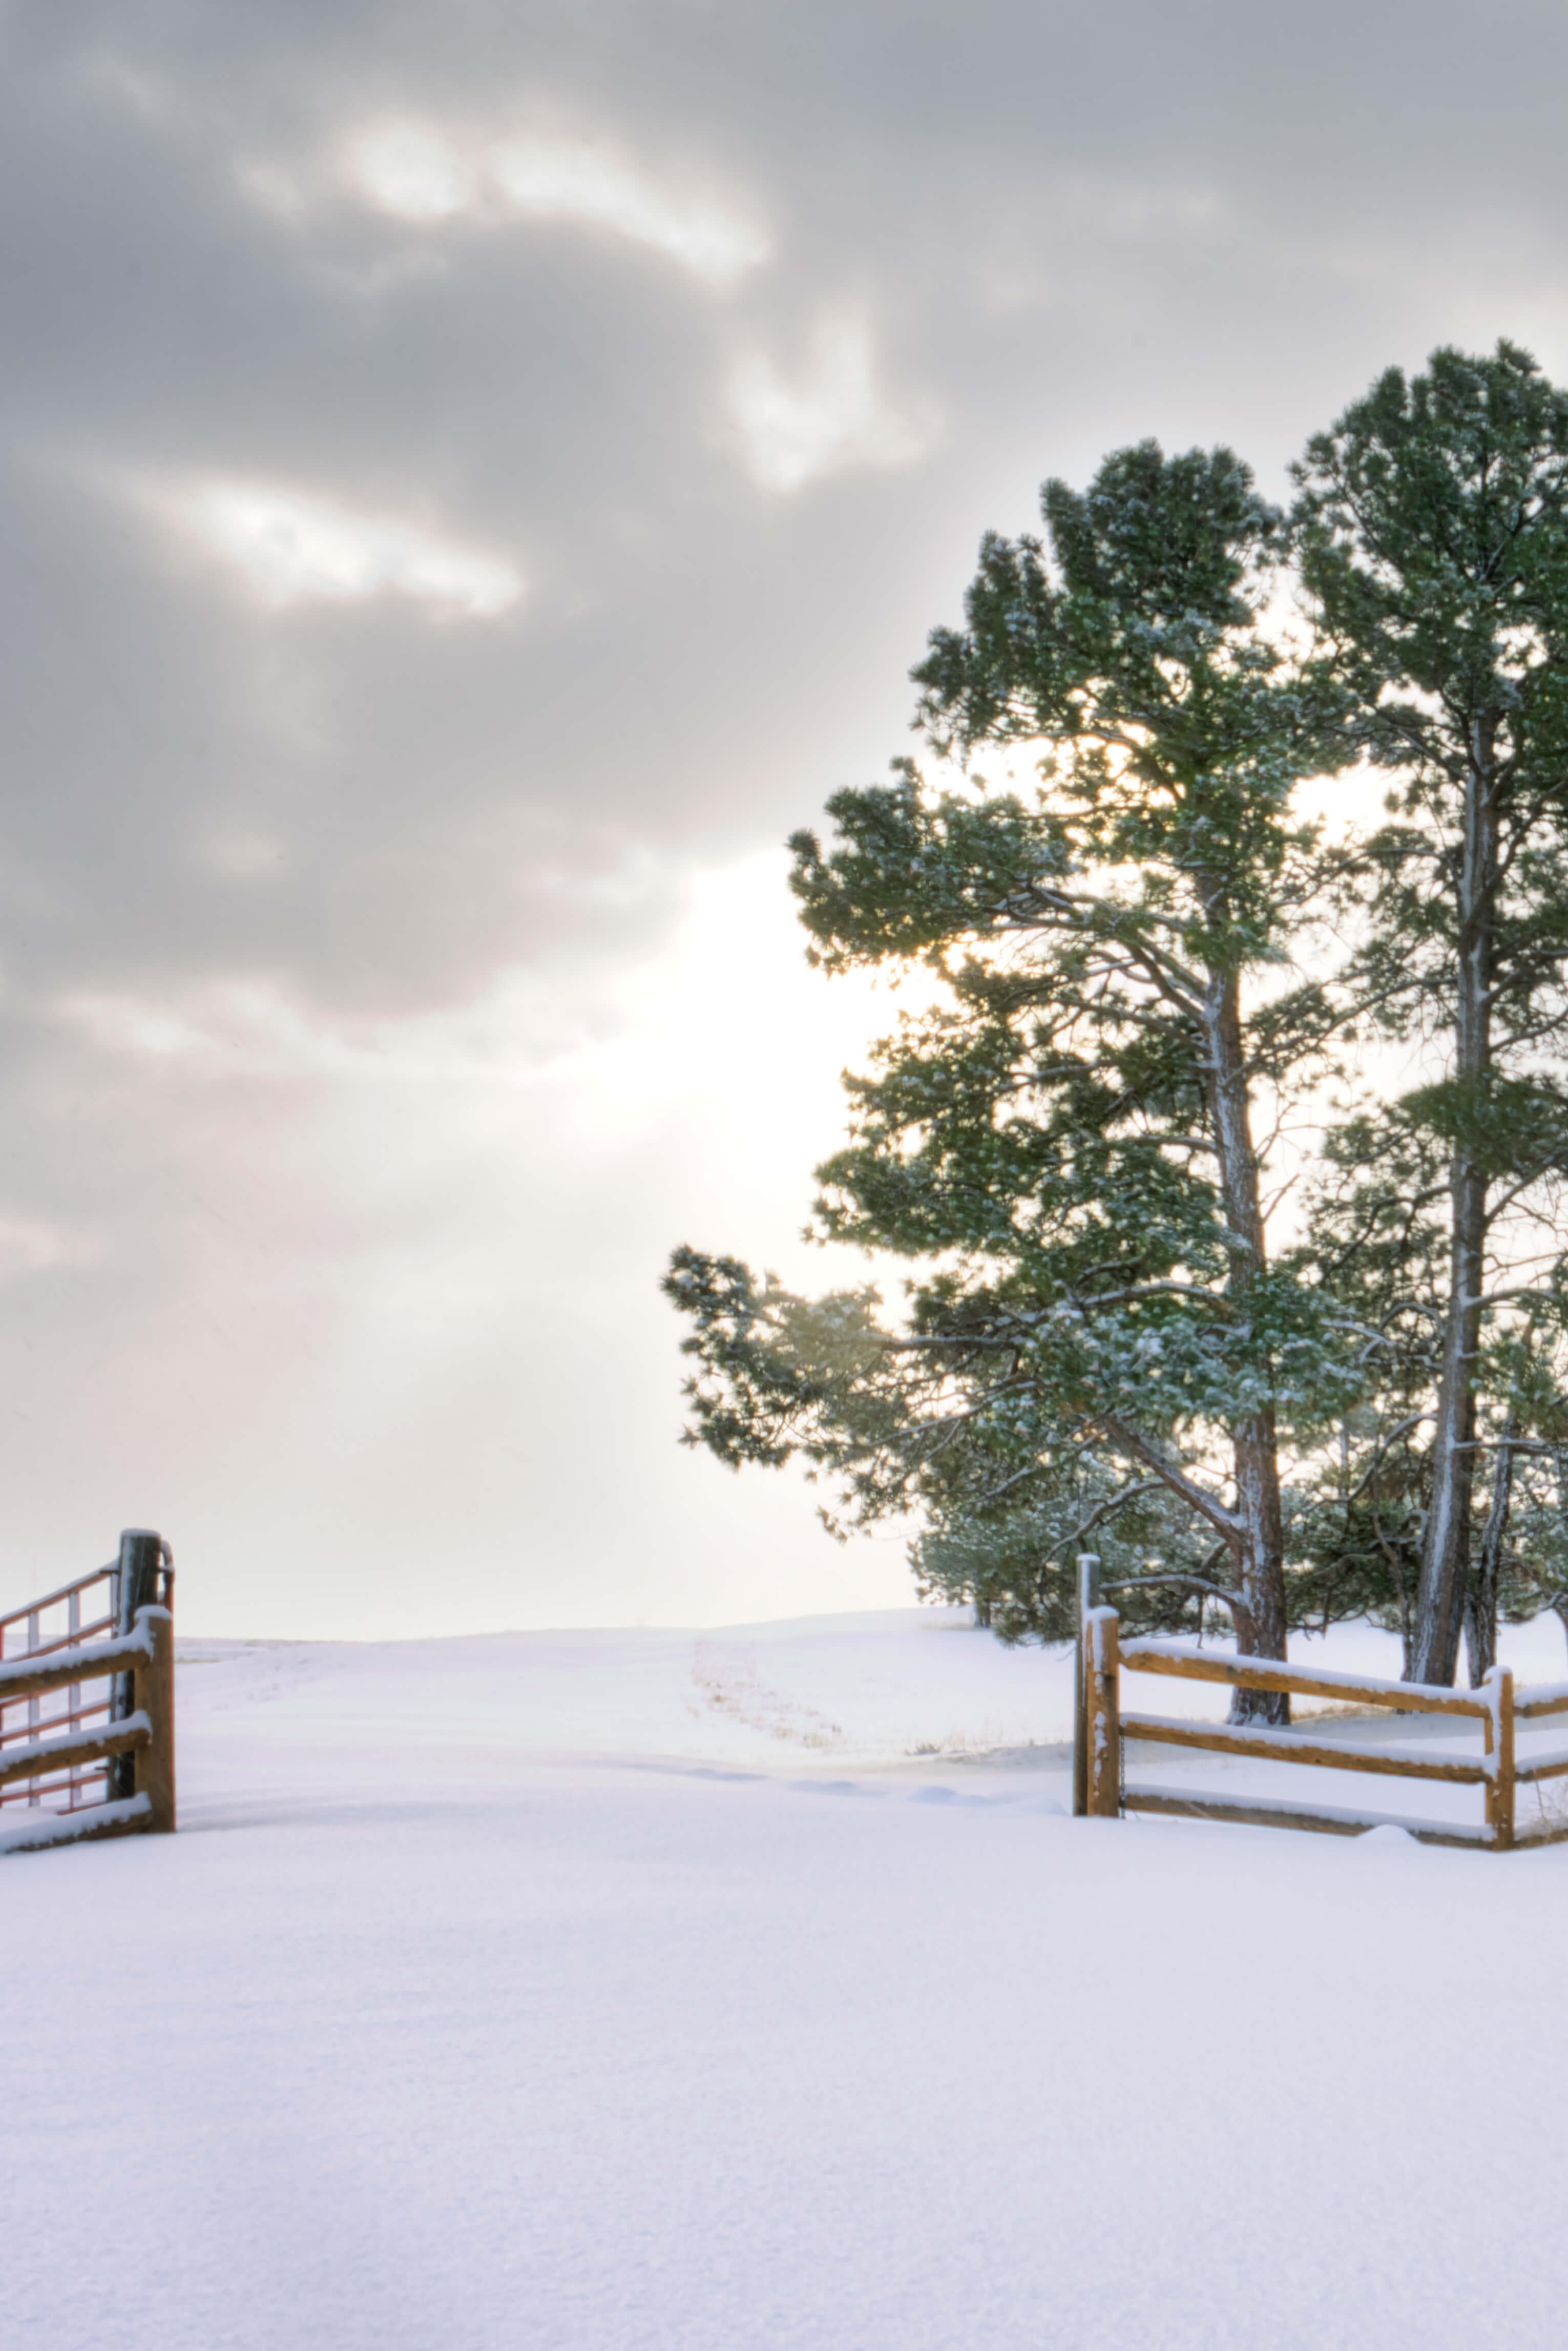 A snowy pasture with a fresh blanket of snow on a crisp morning in Northern Colorado. Sometimes it pays to wake up early.